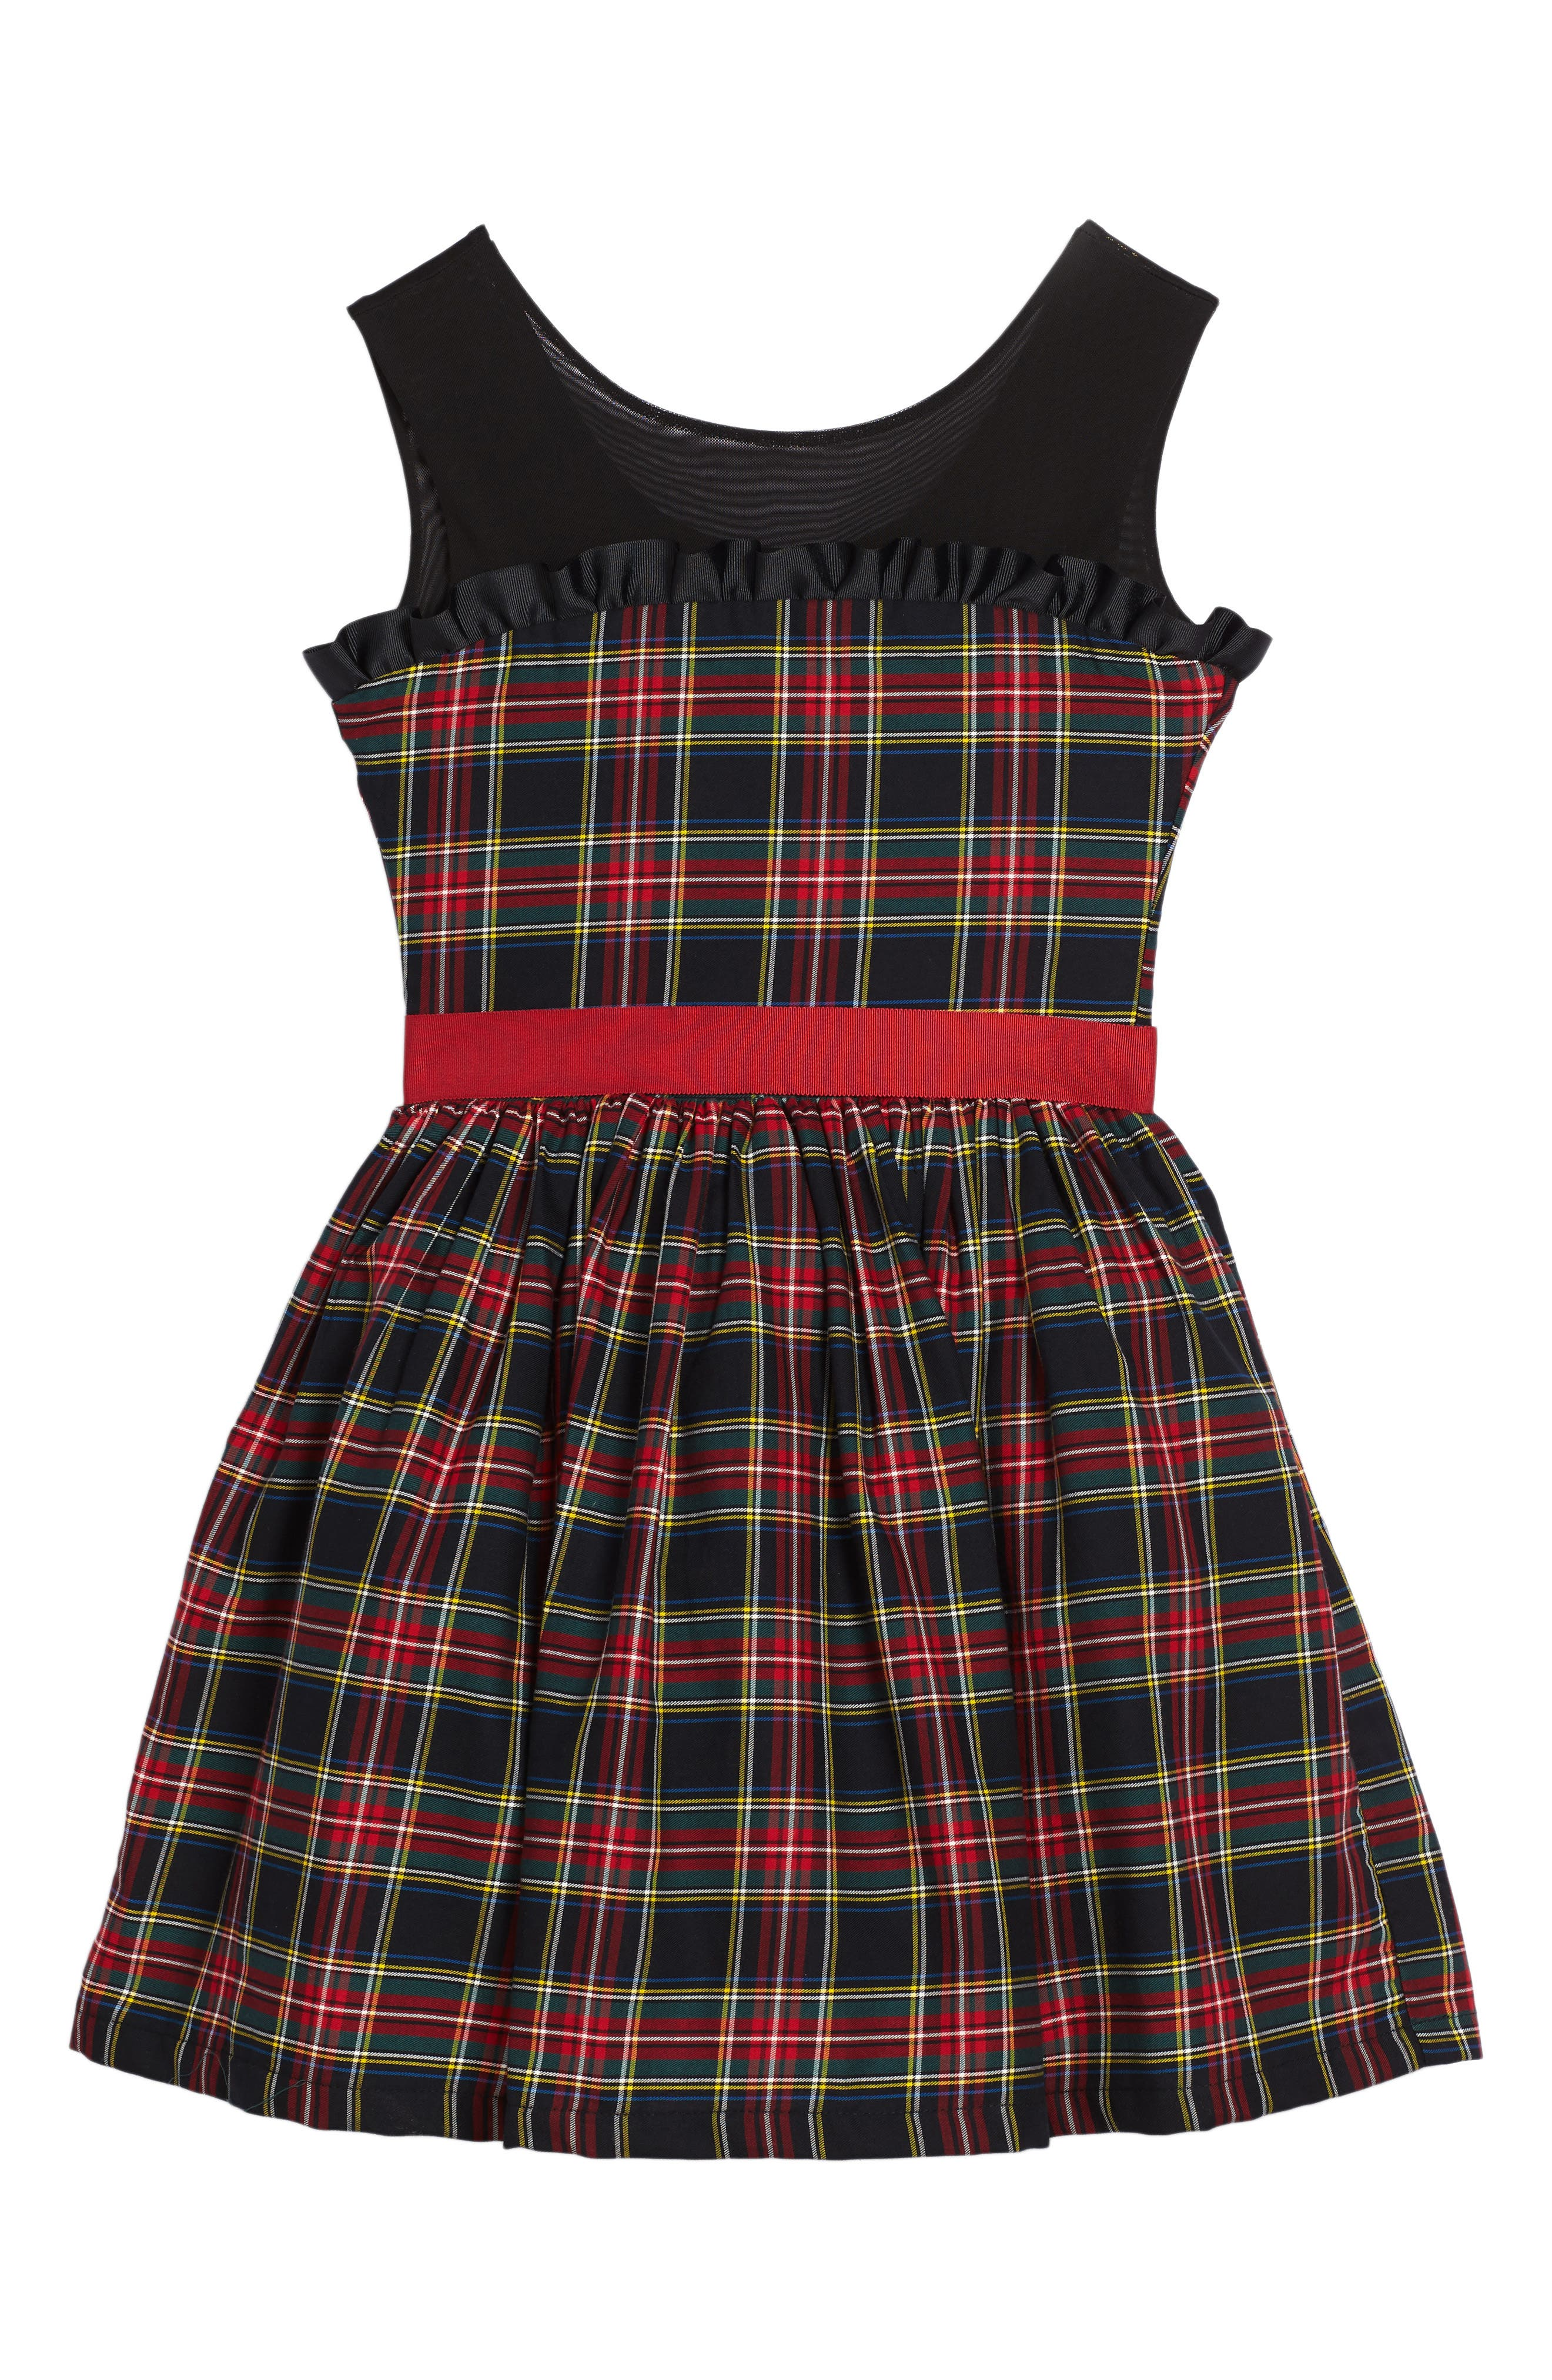 Winter Tartan Party Dress,                             Main thumbnail 1, color,                             Red Plaid